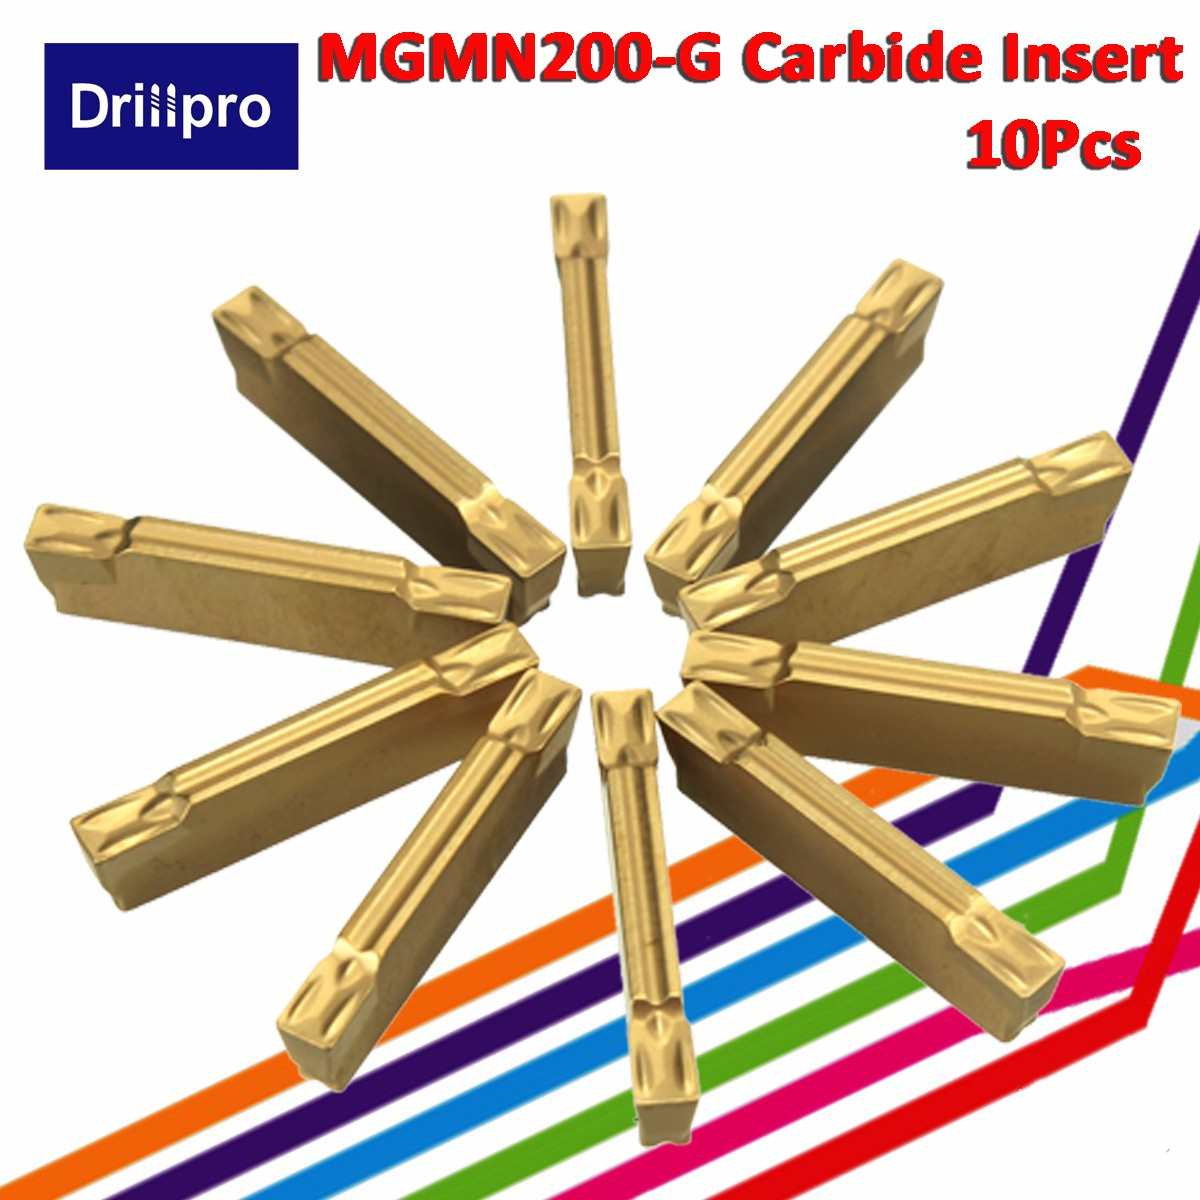 10pcs MGMN200-G 2mm Carbide Inserts for MGEHR//MGIVR Grooving Cut-Off Tool NEW